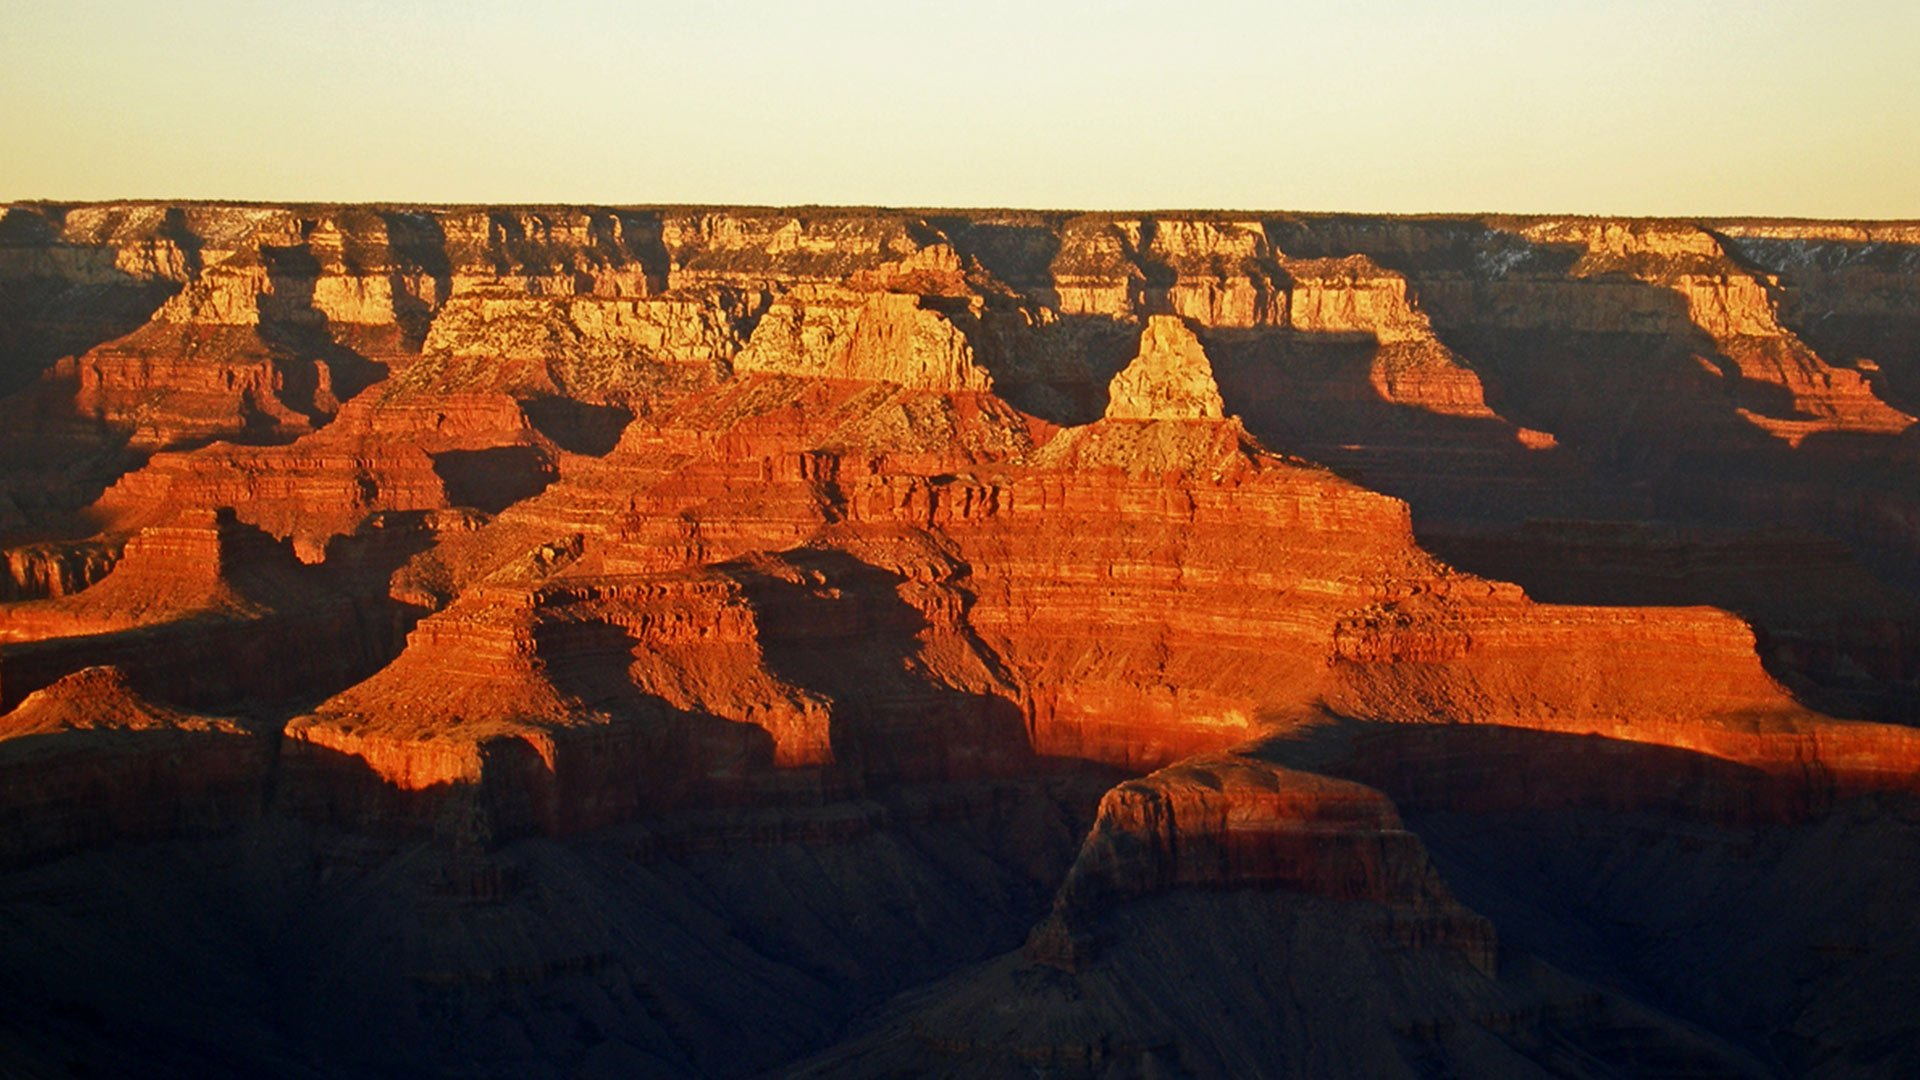 A breathtaking canyon vista at sunset.